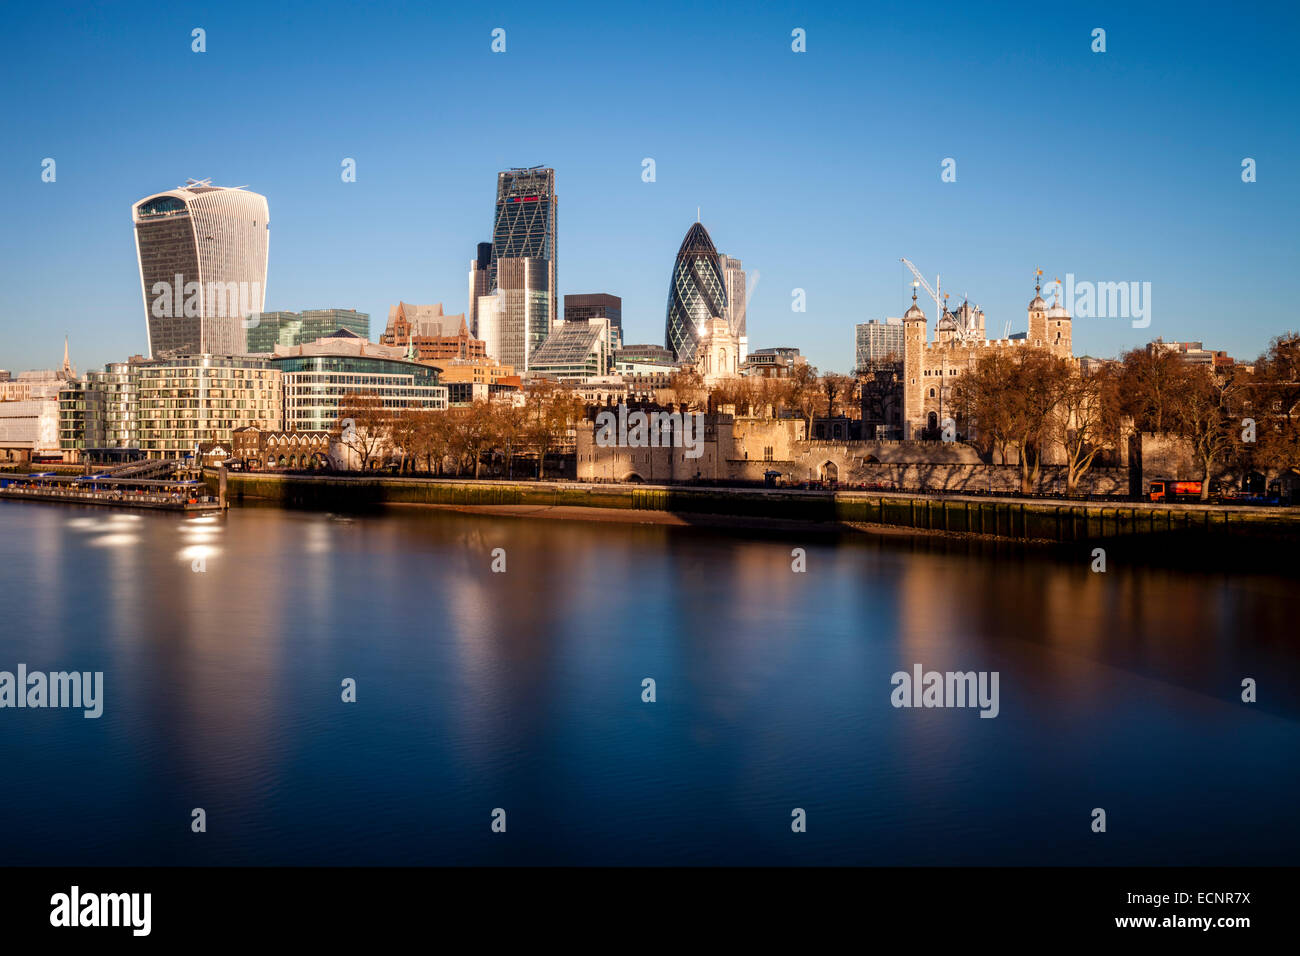 The Tower Of London and City Of London Skyline, London, England - Stock Image